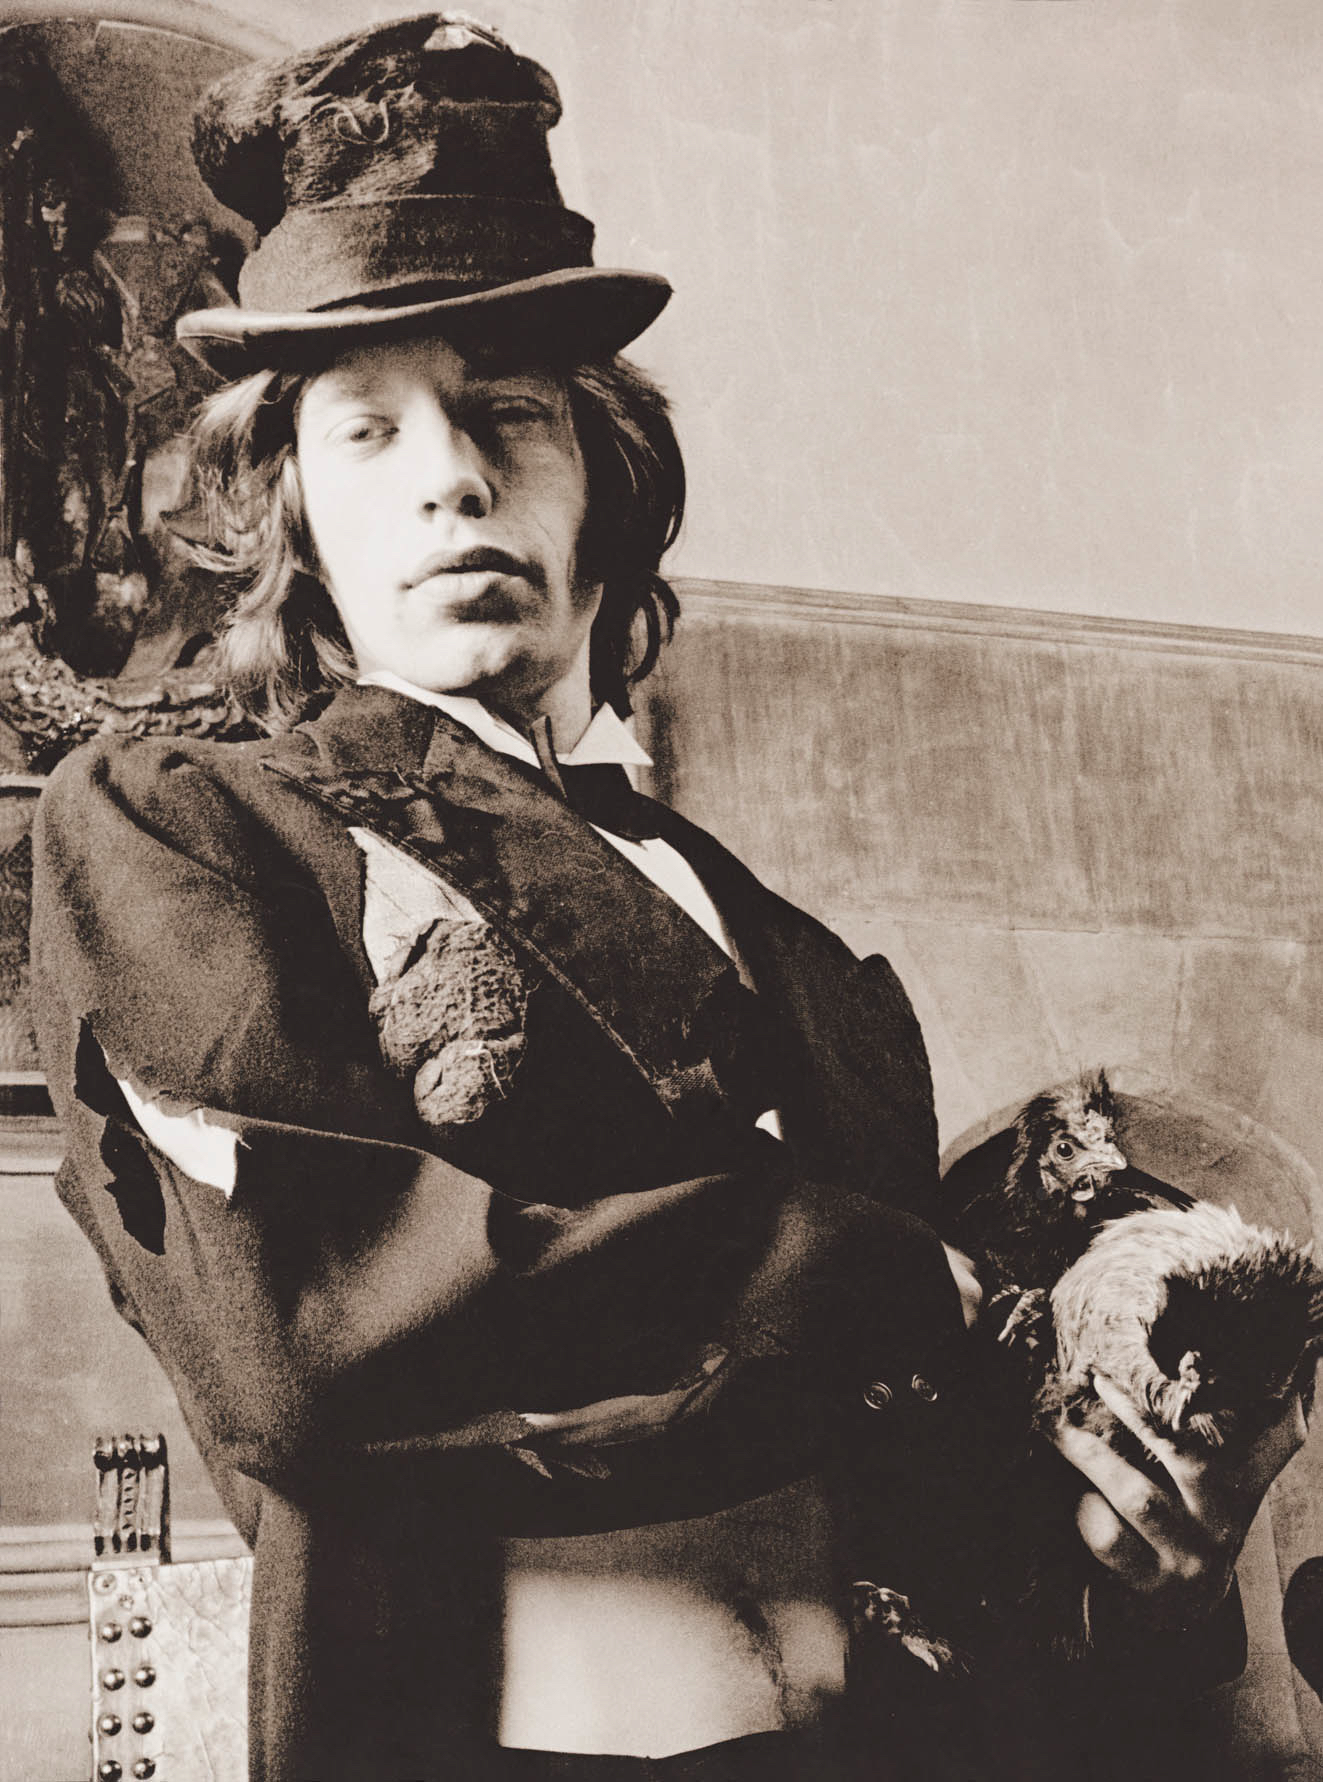 Mick Jagger by Michael Joseph